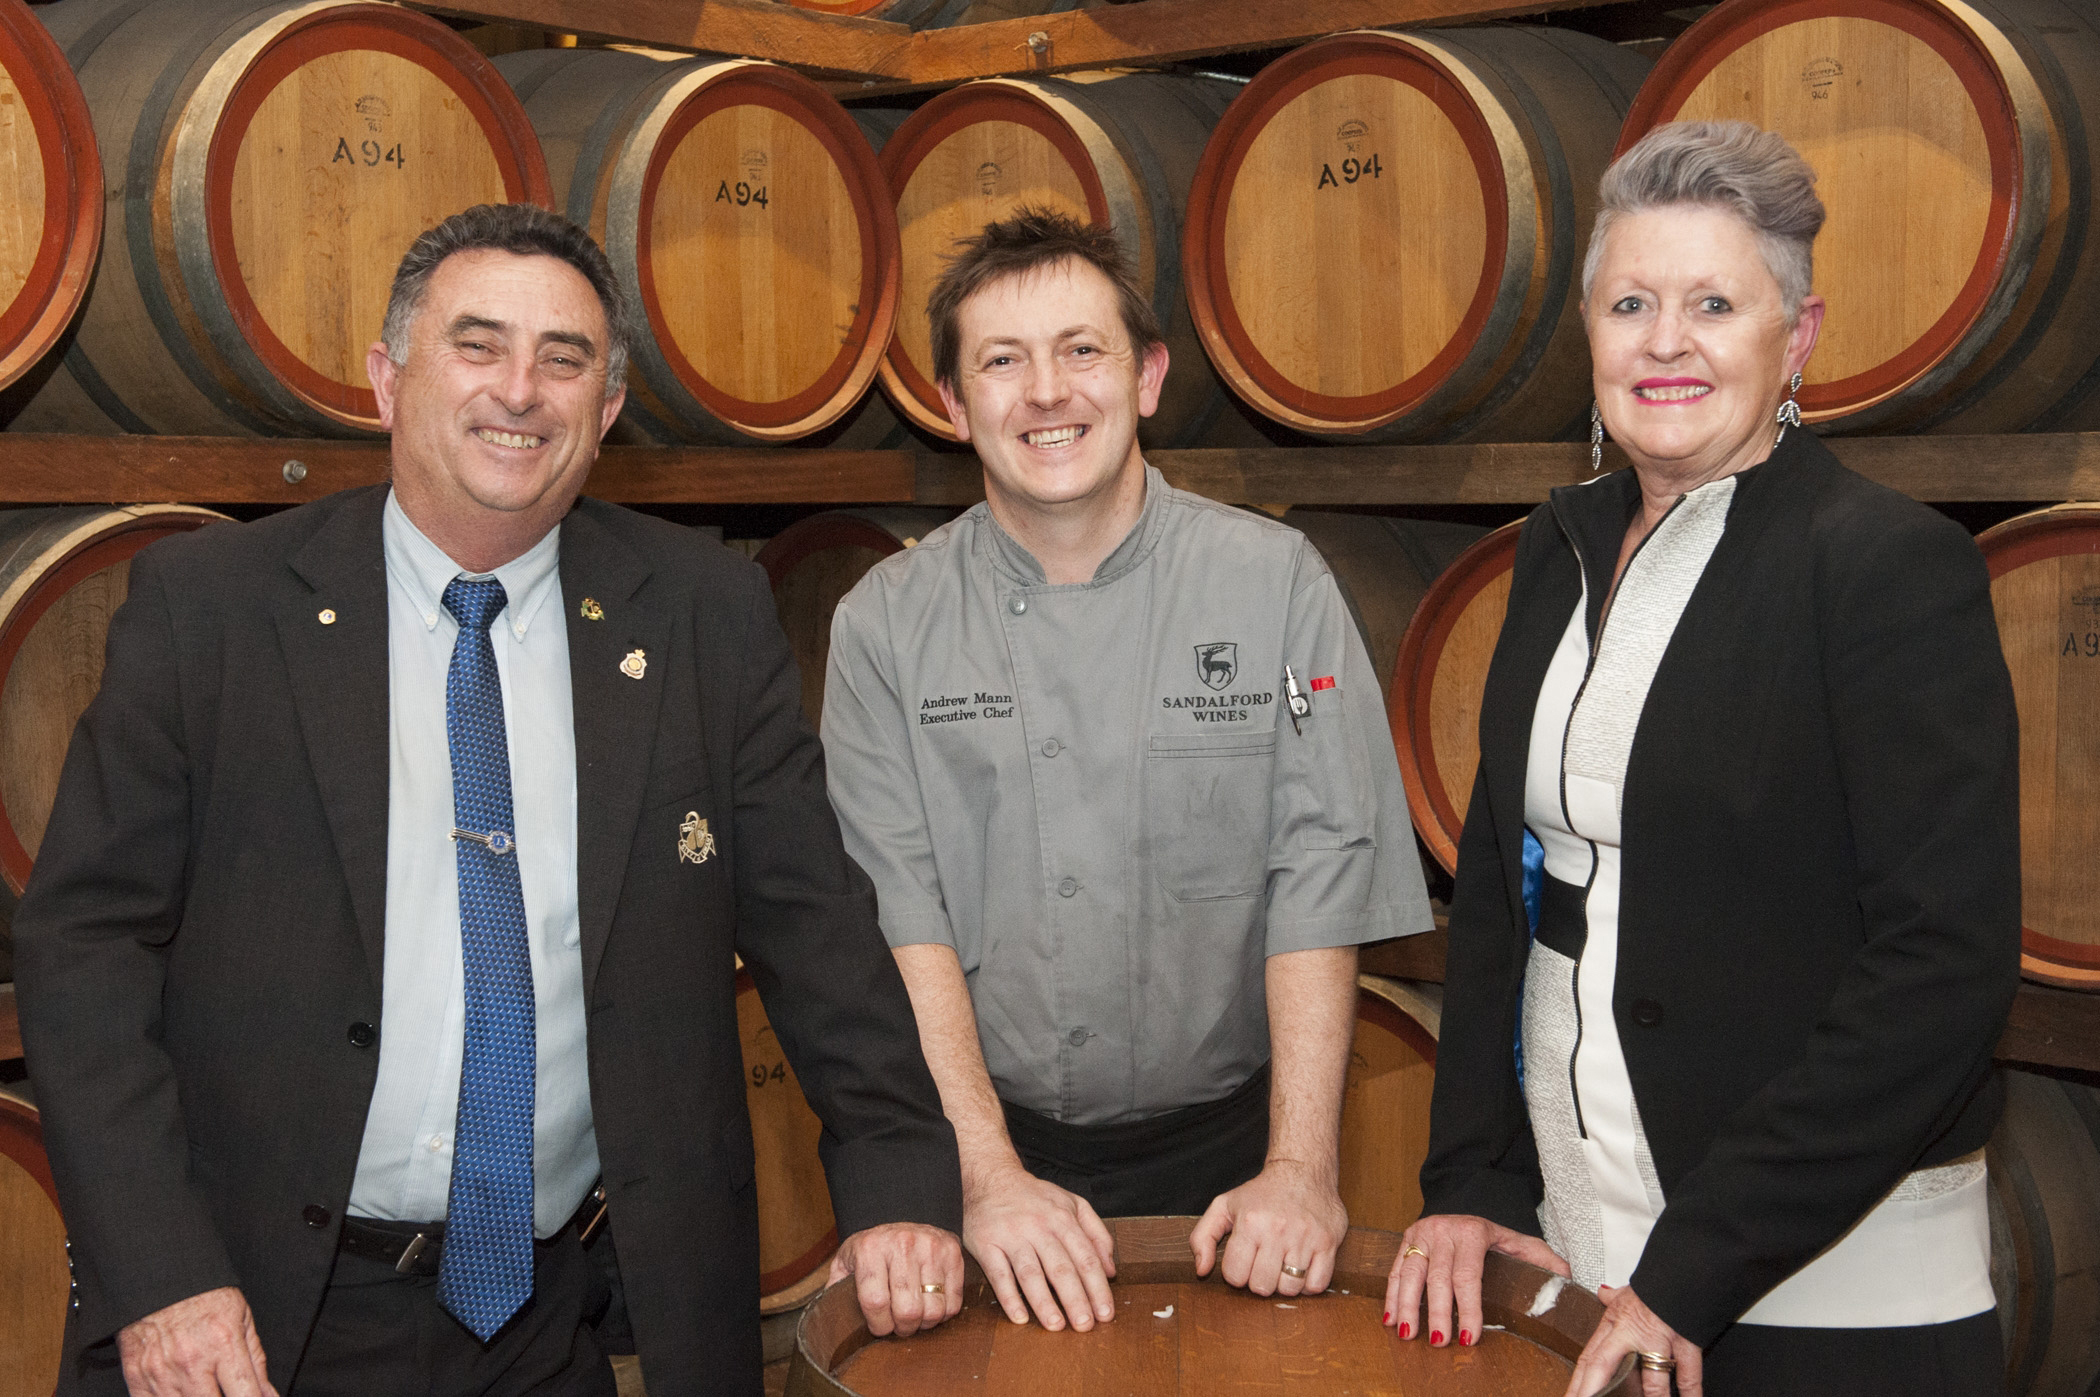 City of Swan Mayor Mick Wainwright, Sandalford Wines Executive Chef Andrew Mann and Principal Policy Officer at Department of Agriculture and Food Deborah Pett.